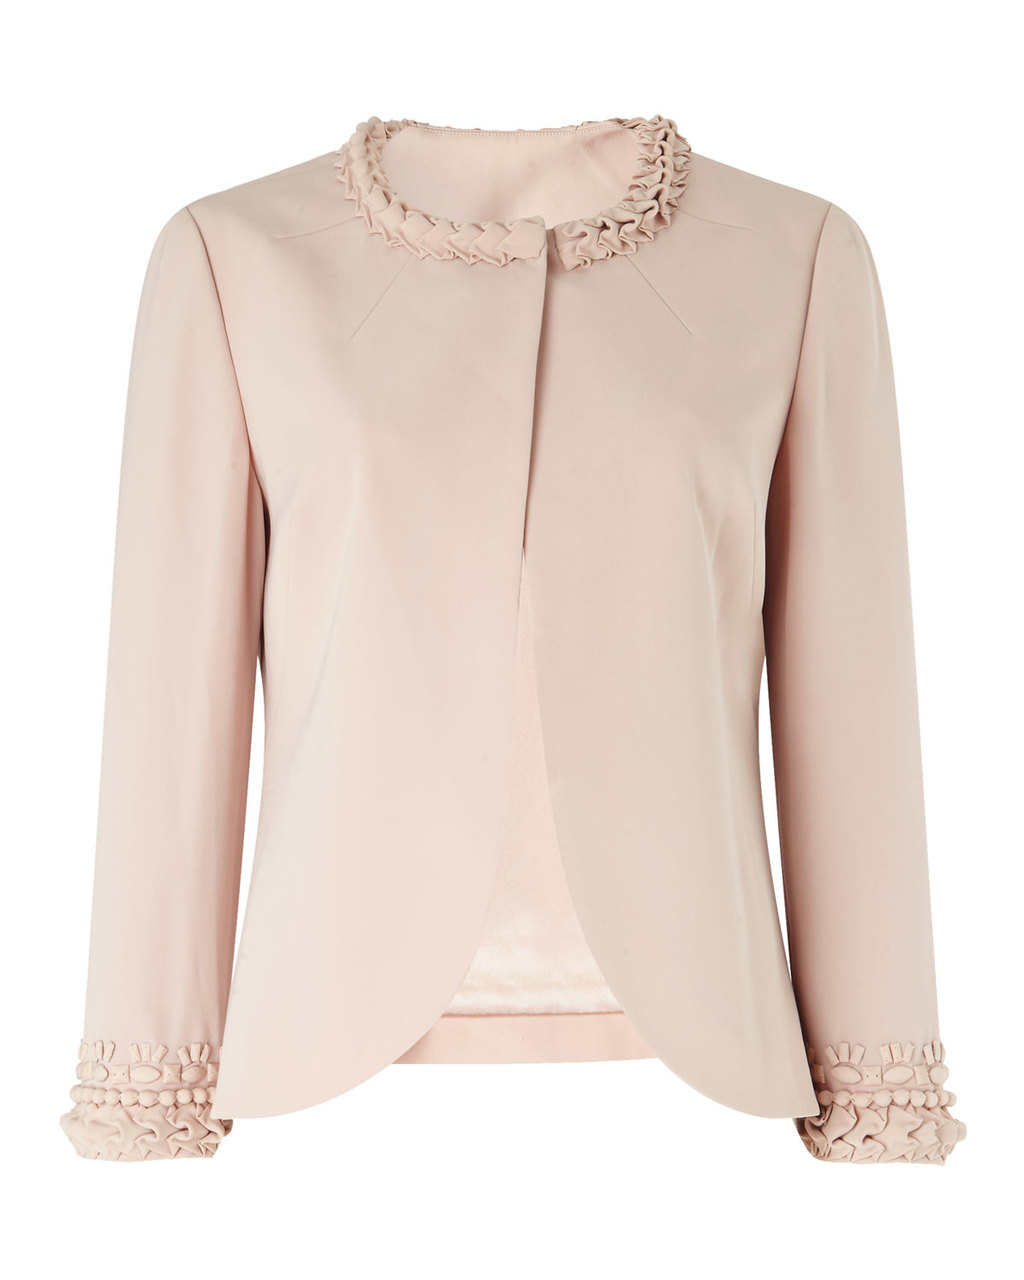 Jacket One - pattern: plain; collar: round collar/collarless; style: boxy; predominant colour: blush; length: standard; fit: straight cut (boxy); fibres: polyester/polyamide - 100%; occasions: occasion, creative work; sleeve length: long sleeve; sleeve style: standard; texture group: crepes; collar break: high; pattern type: fabric; season: s/s 2016; wardrobe: investment